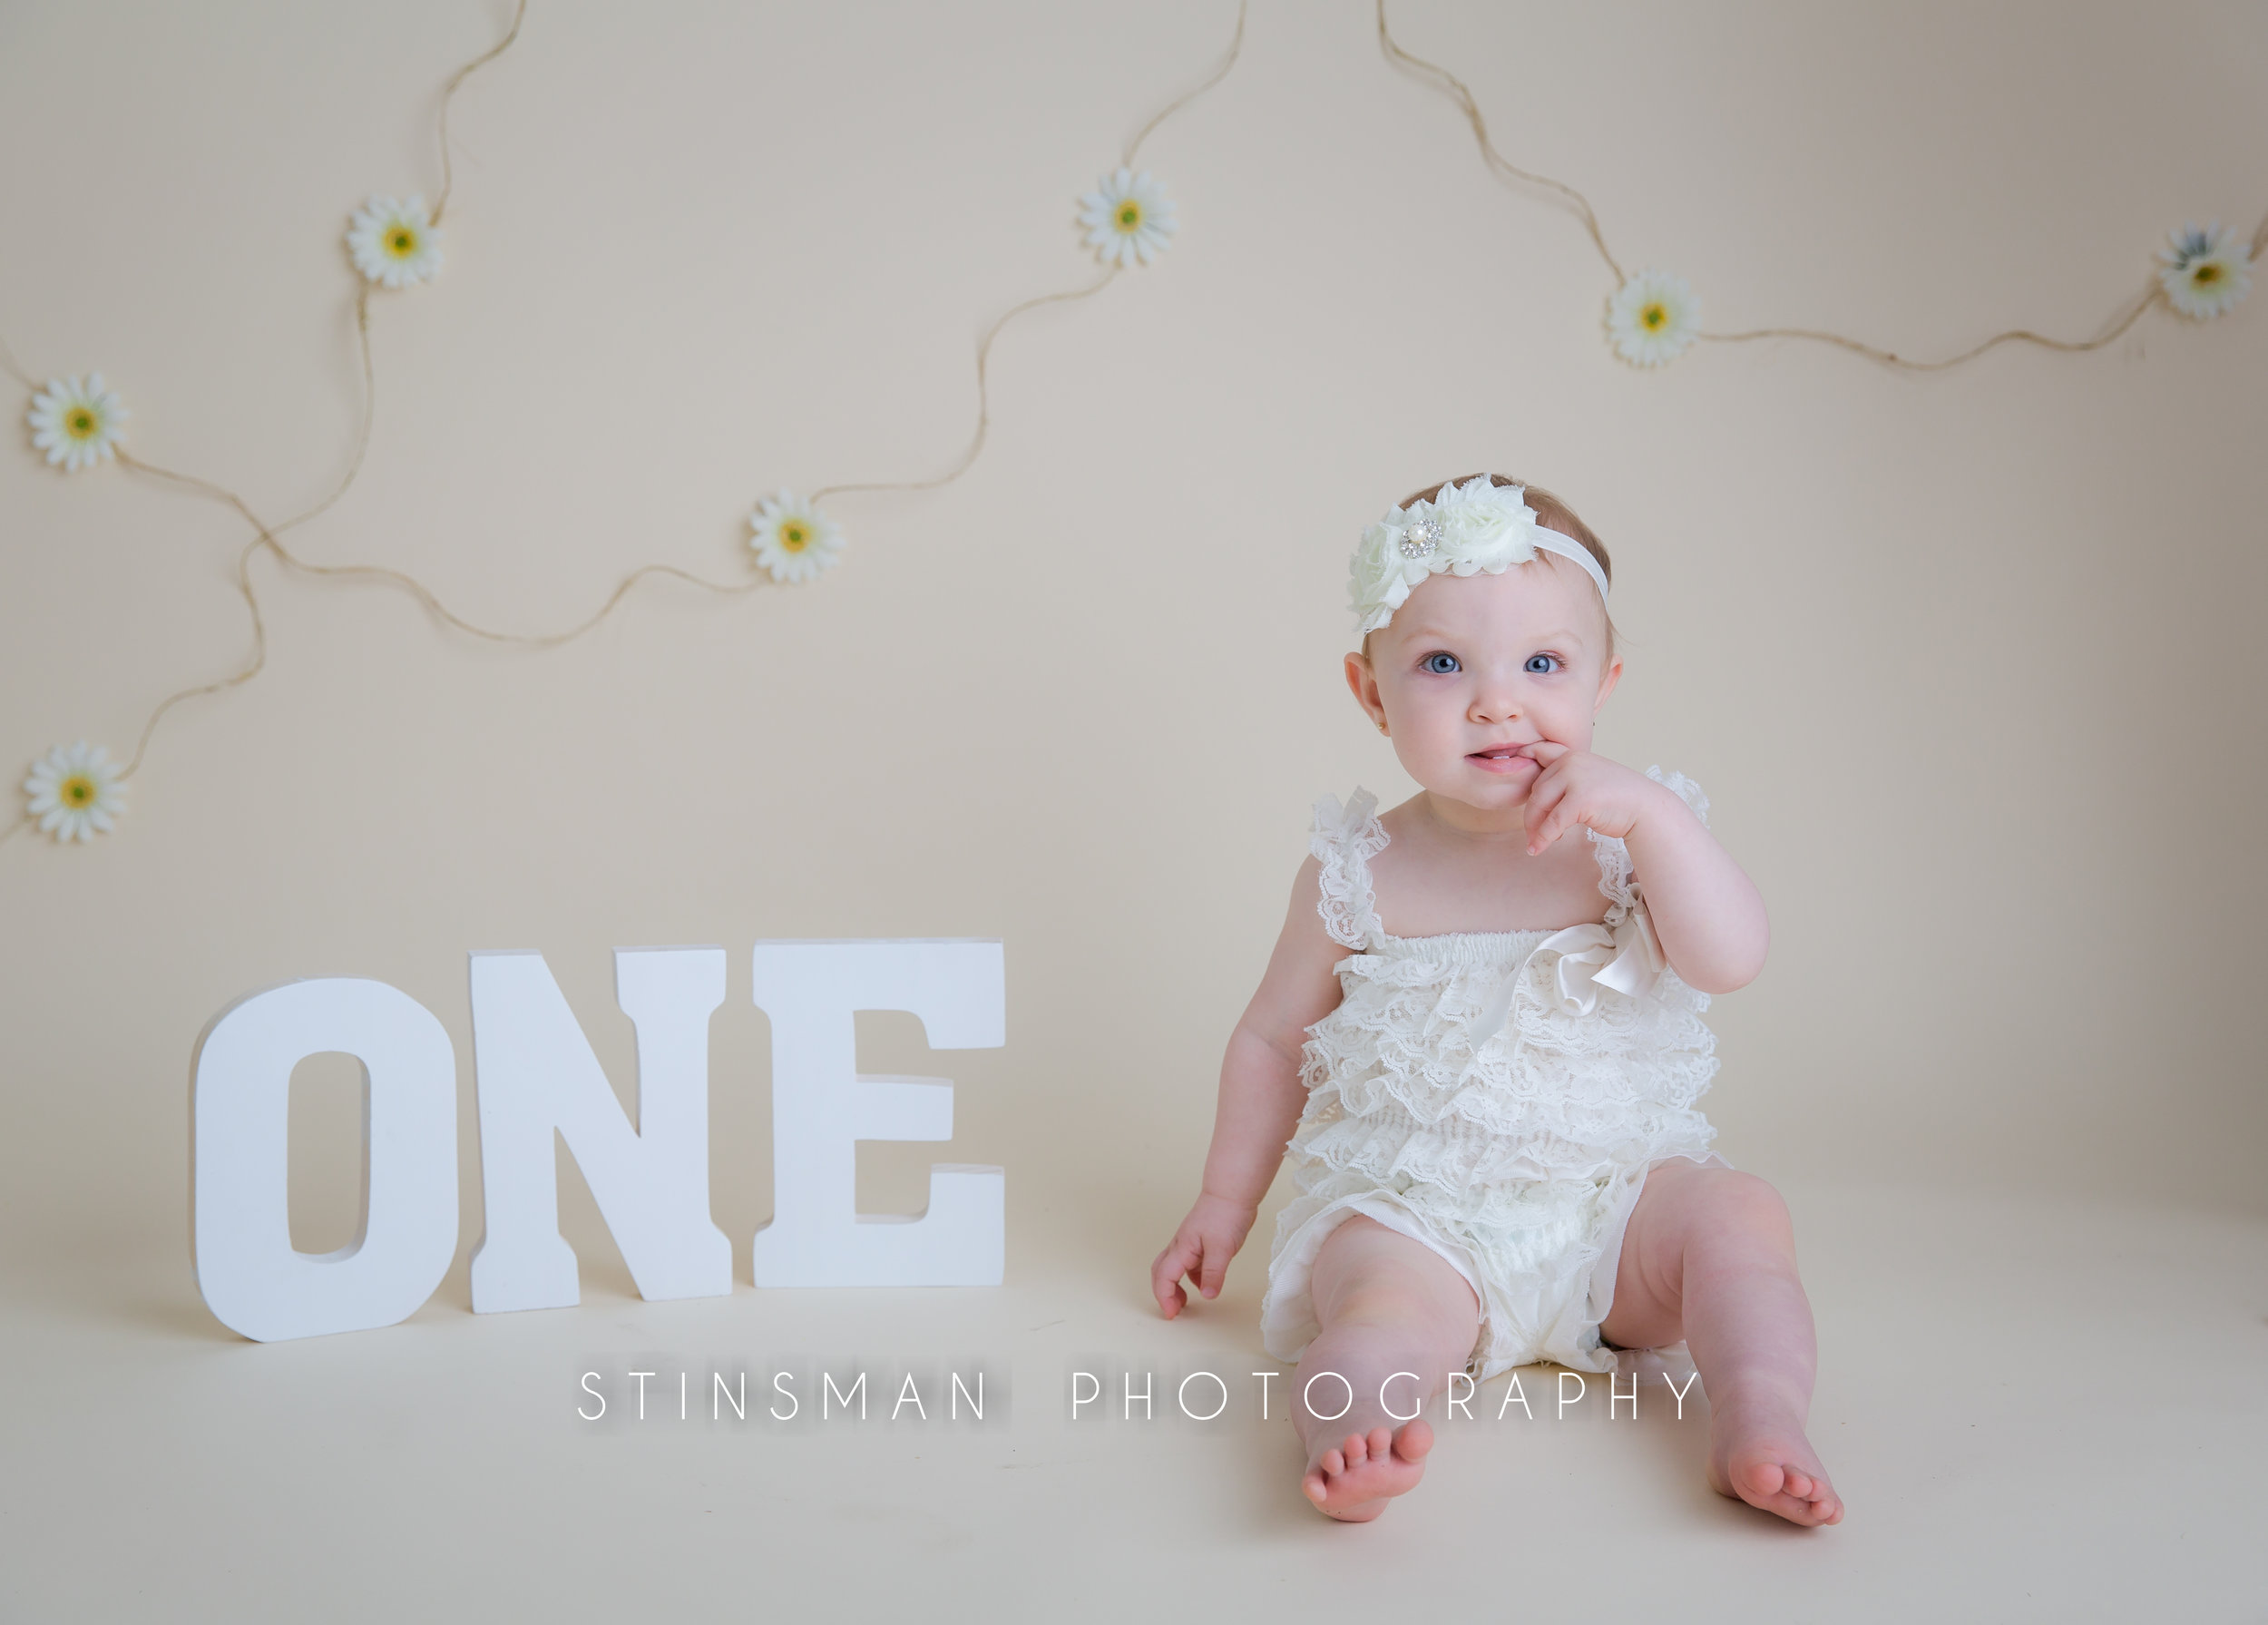 one year old birthday girl wearing white with a white headband and O N E letters